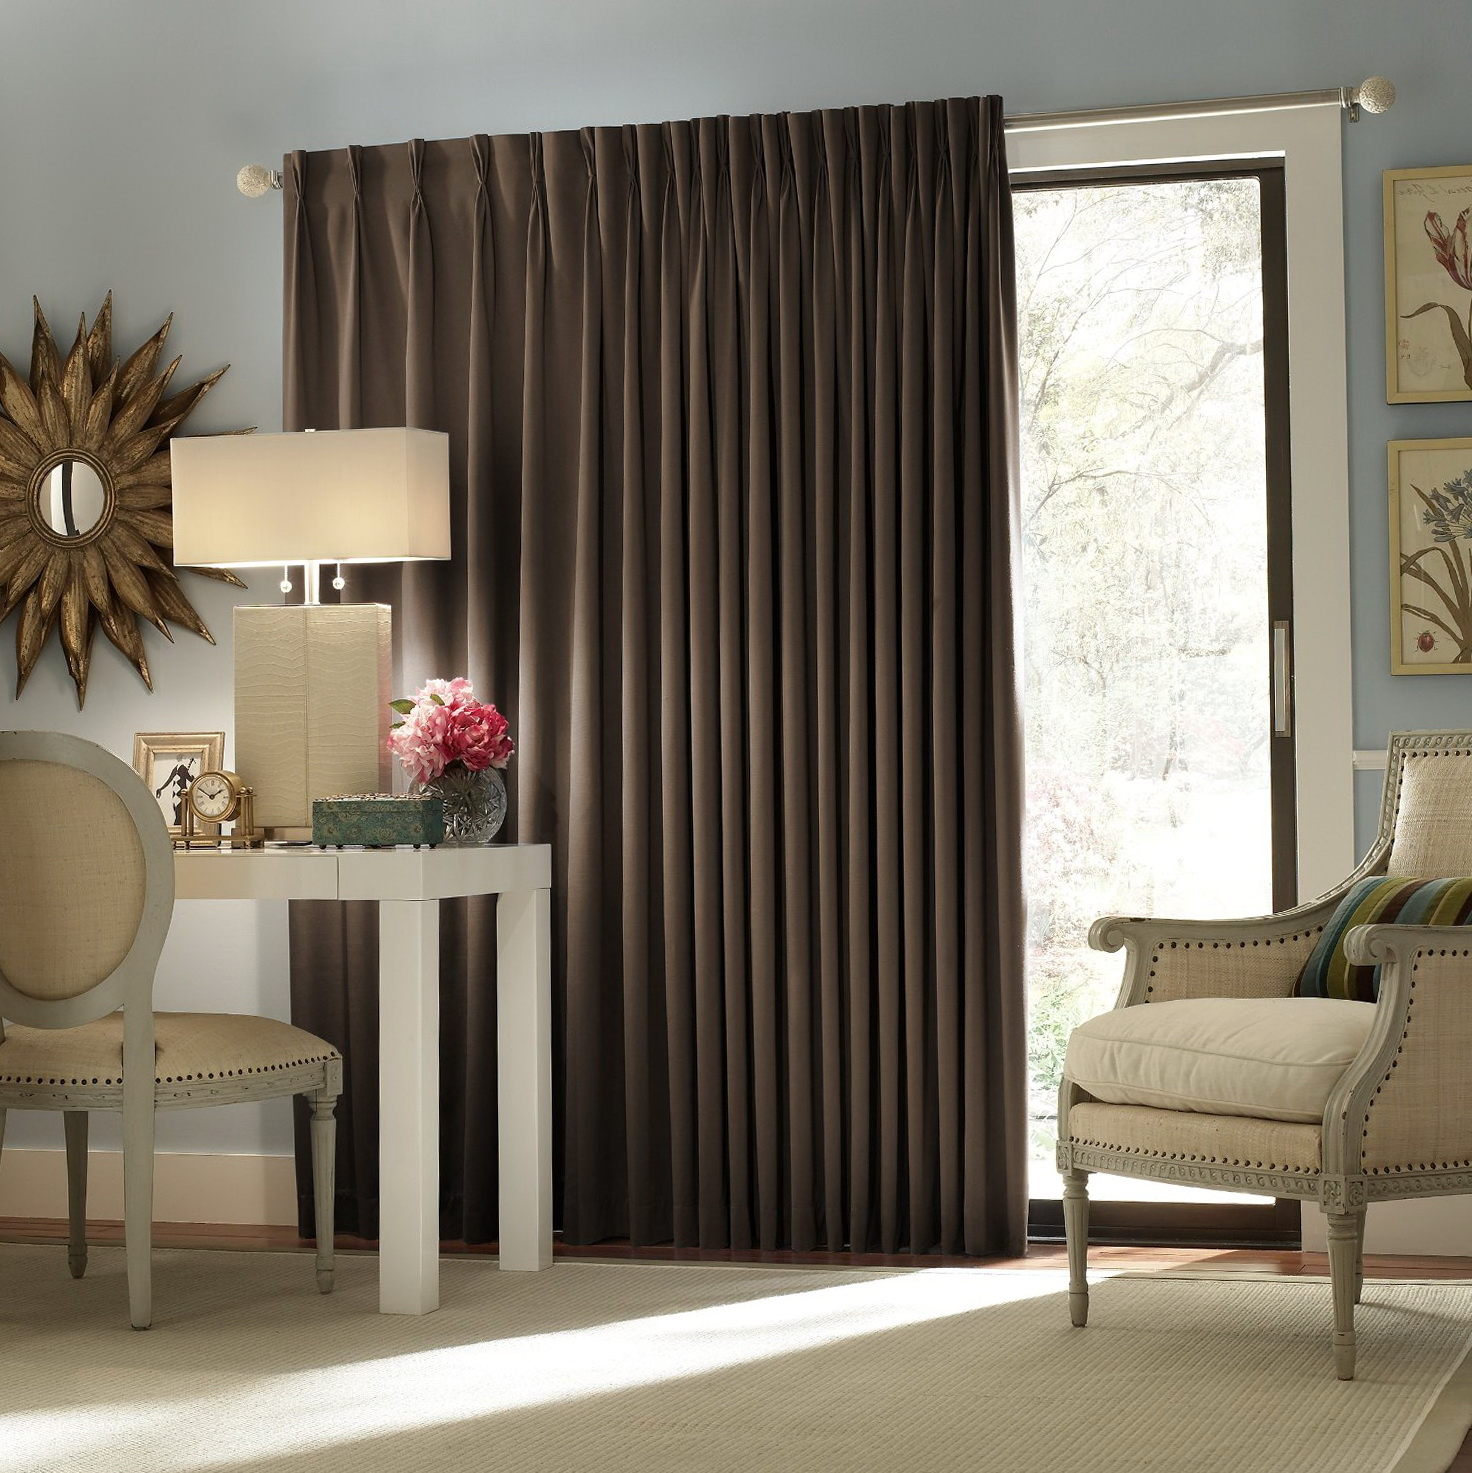 Images Of Curtains For Sliding Doors